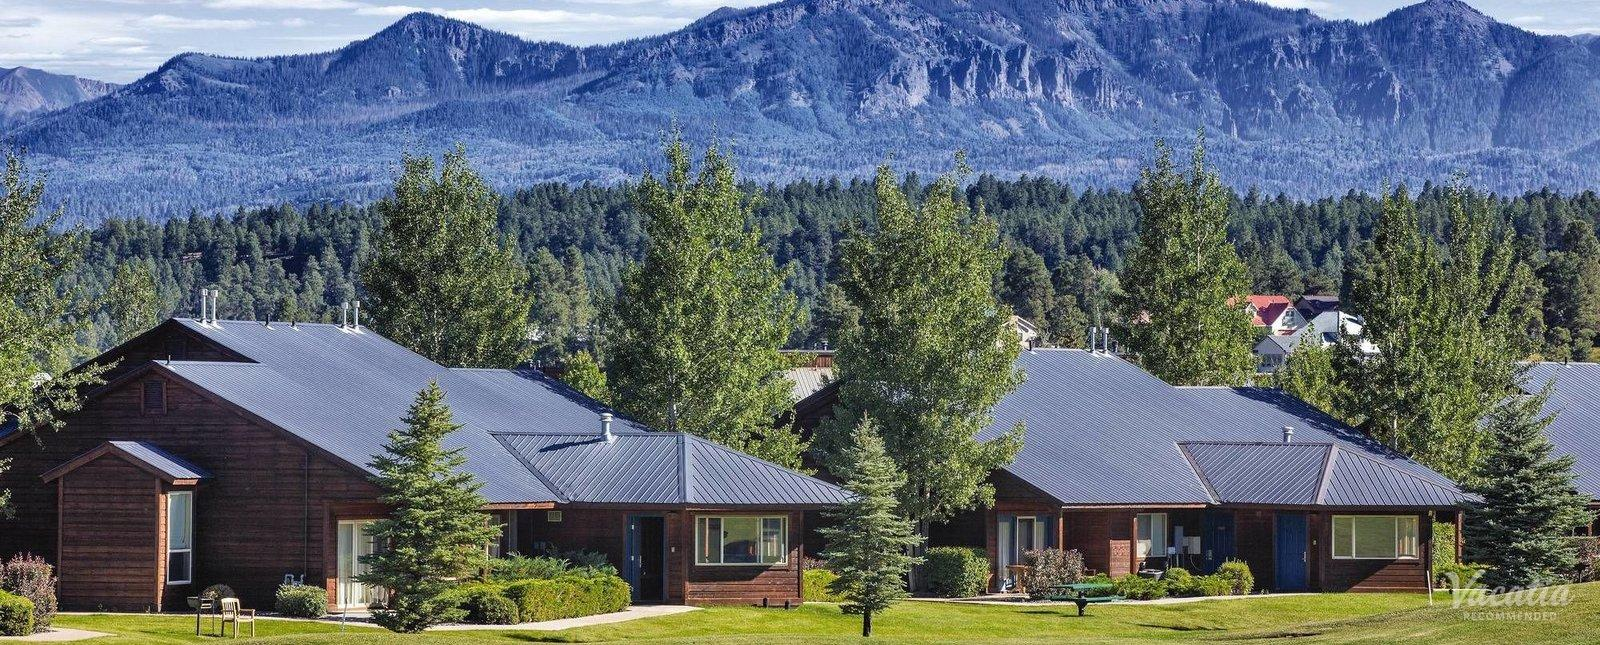 Wyndham Pagosa Springs Resort